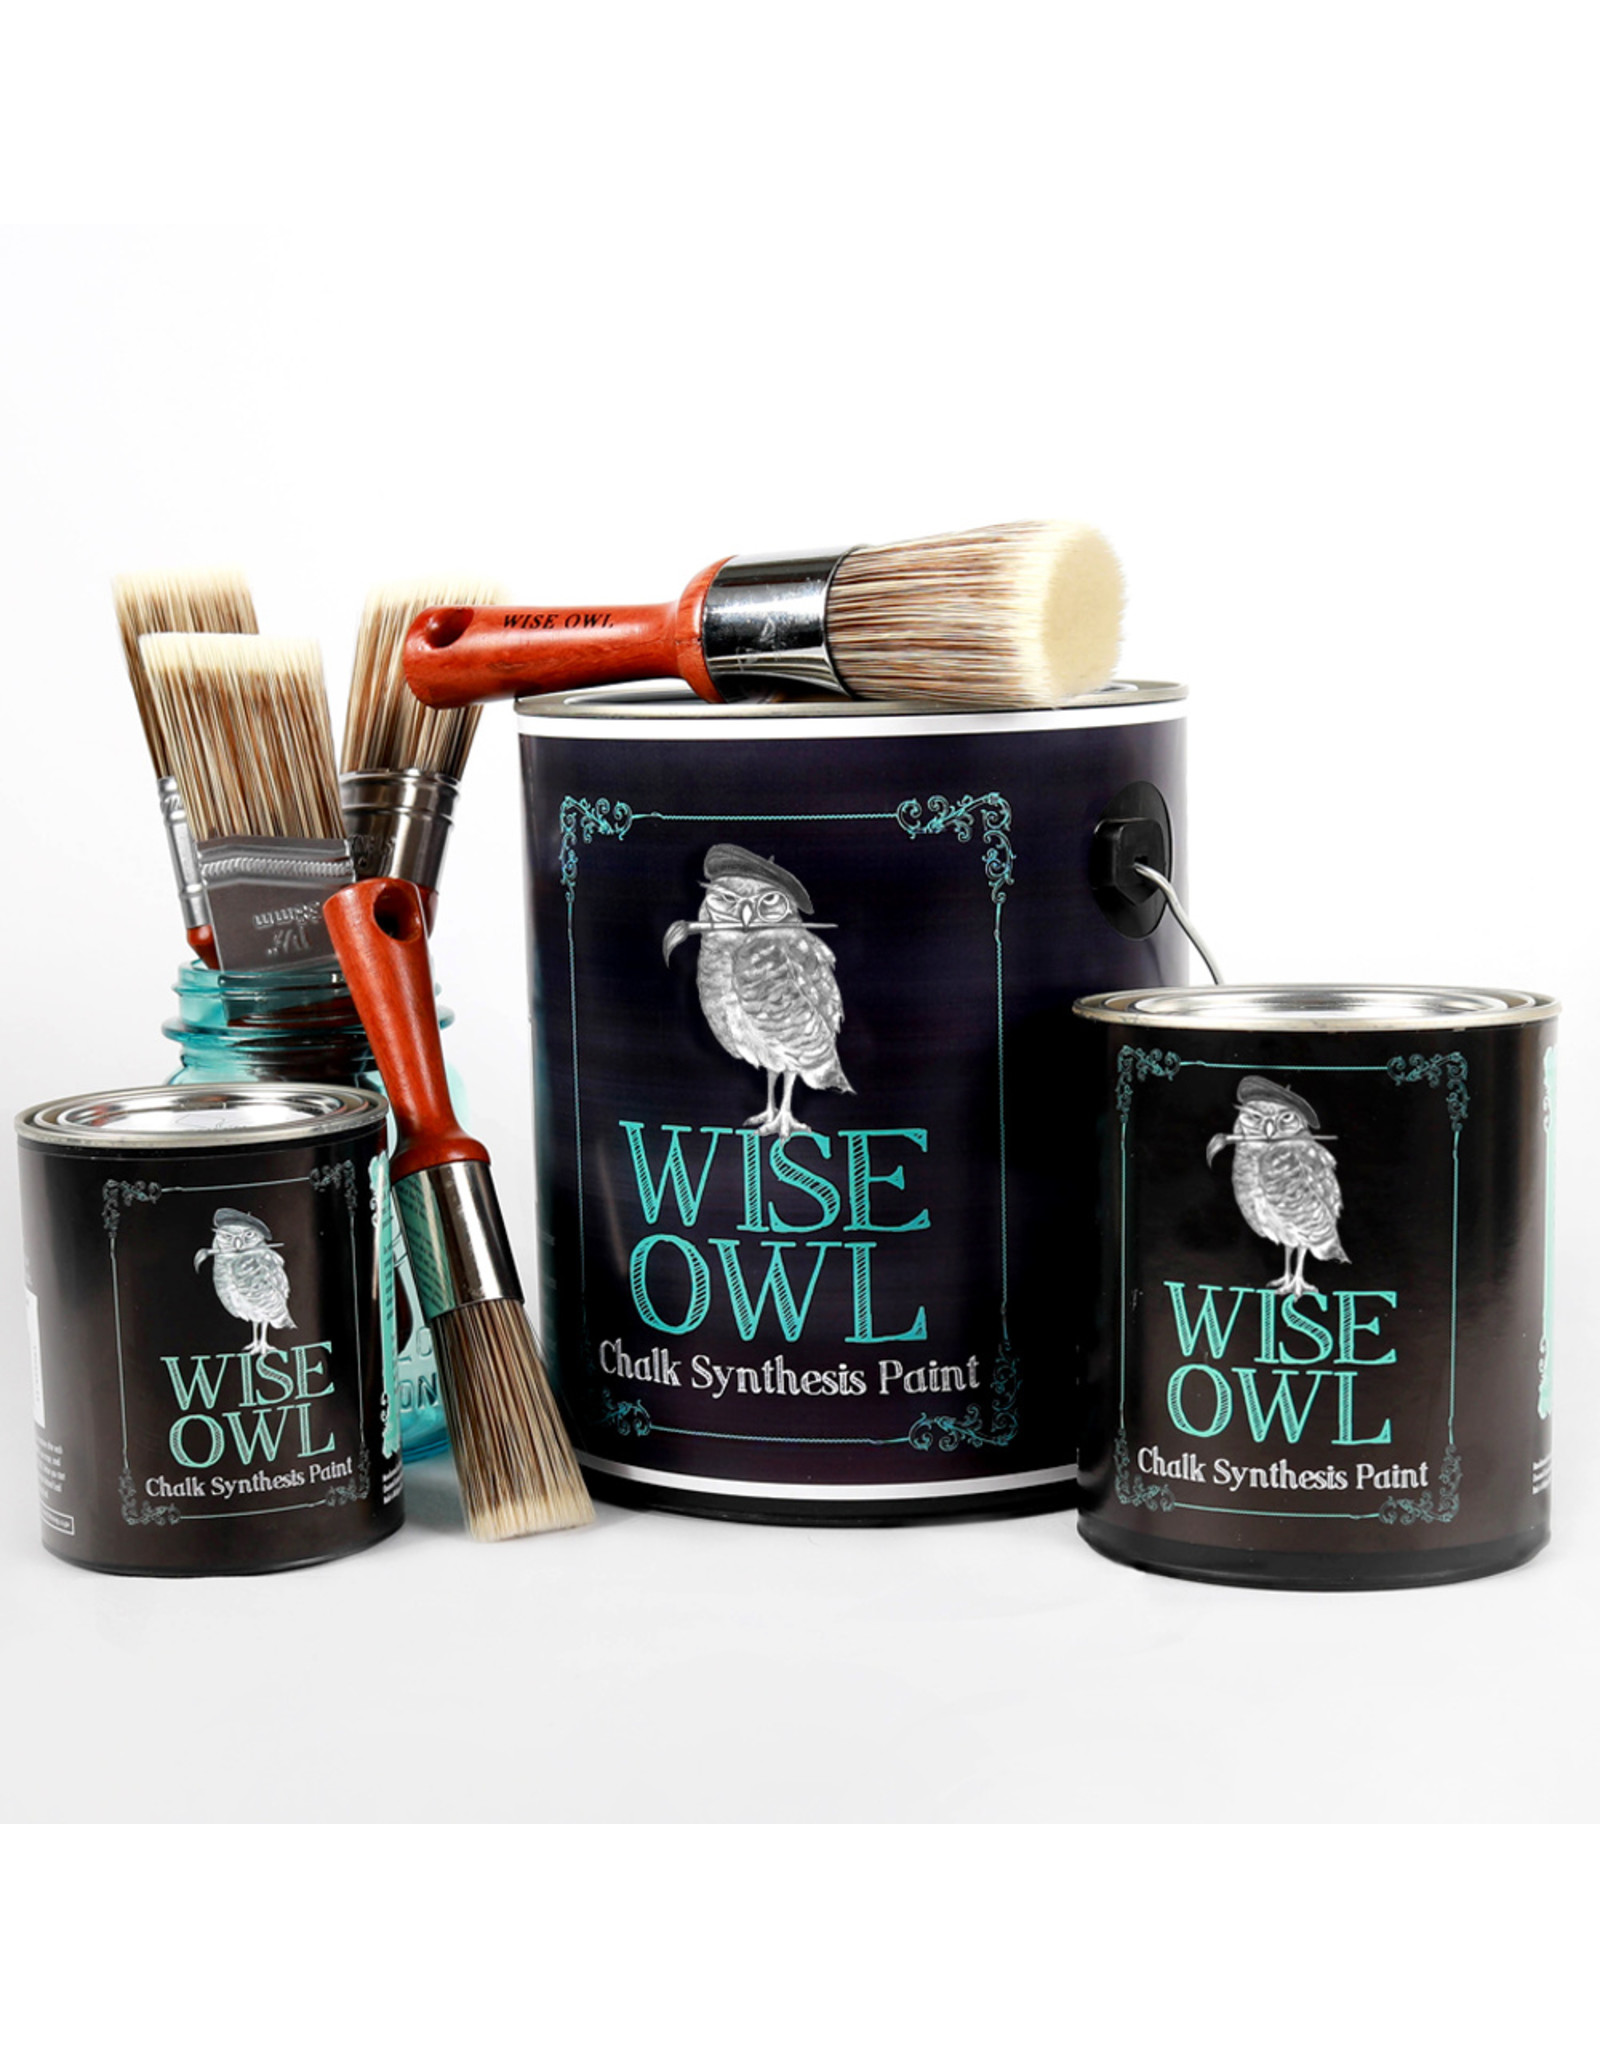 Wise Owl Paint Chalk Synthesis Paint Charleston Green-Pint